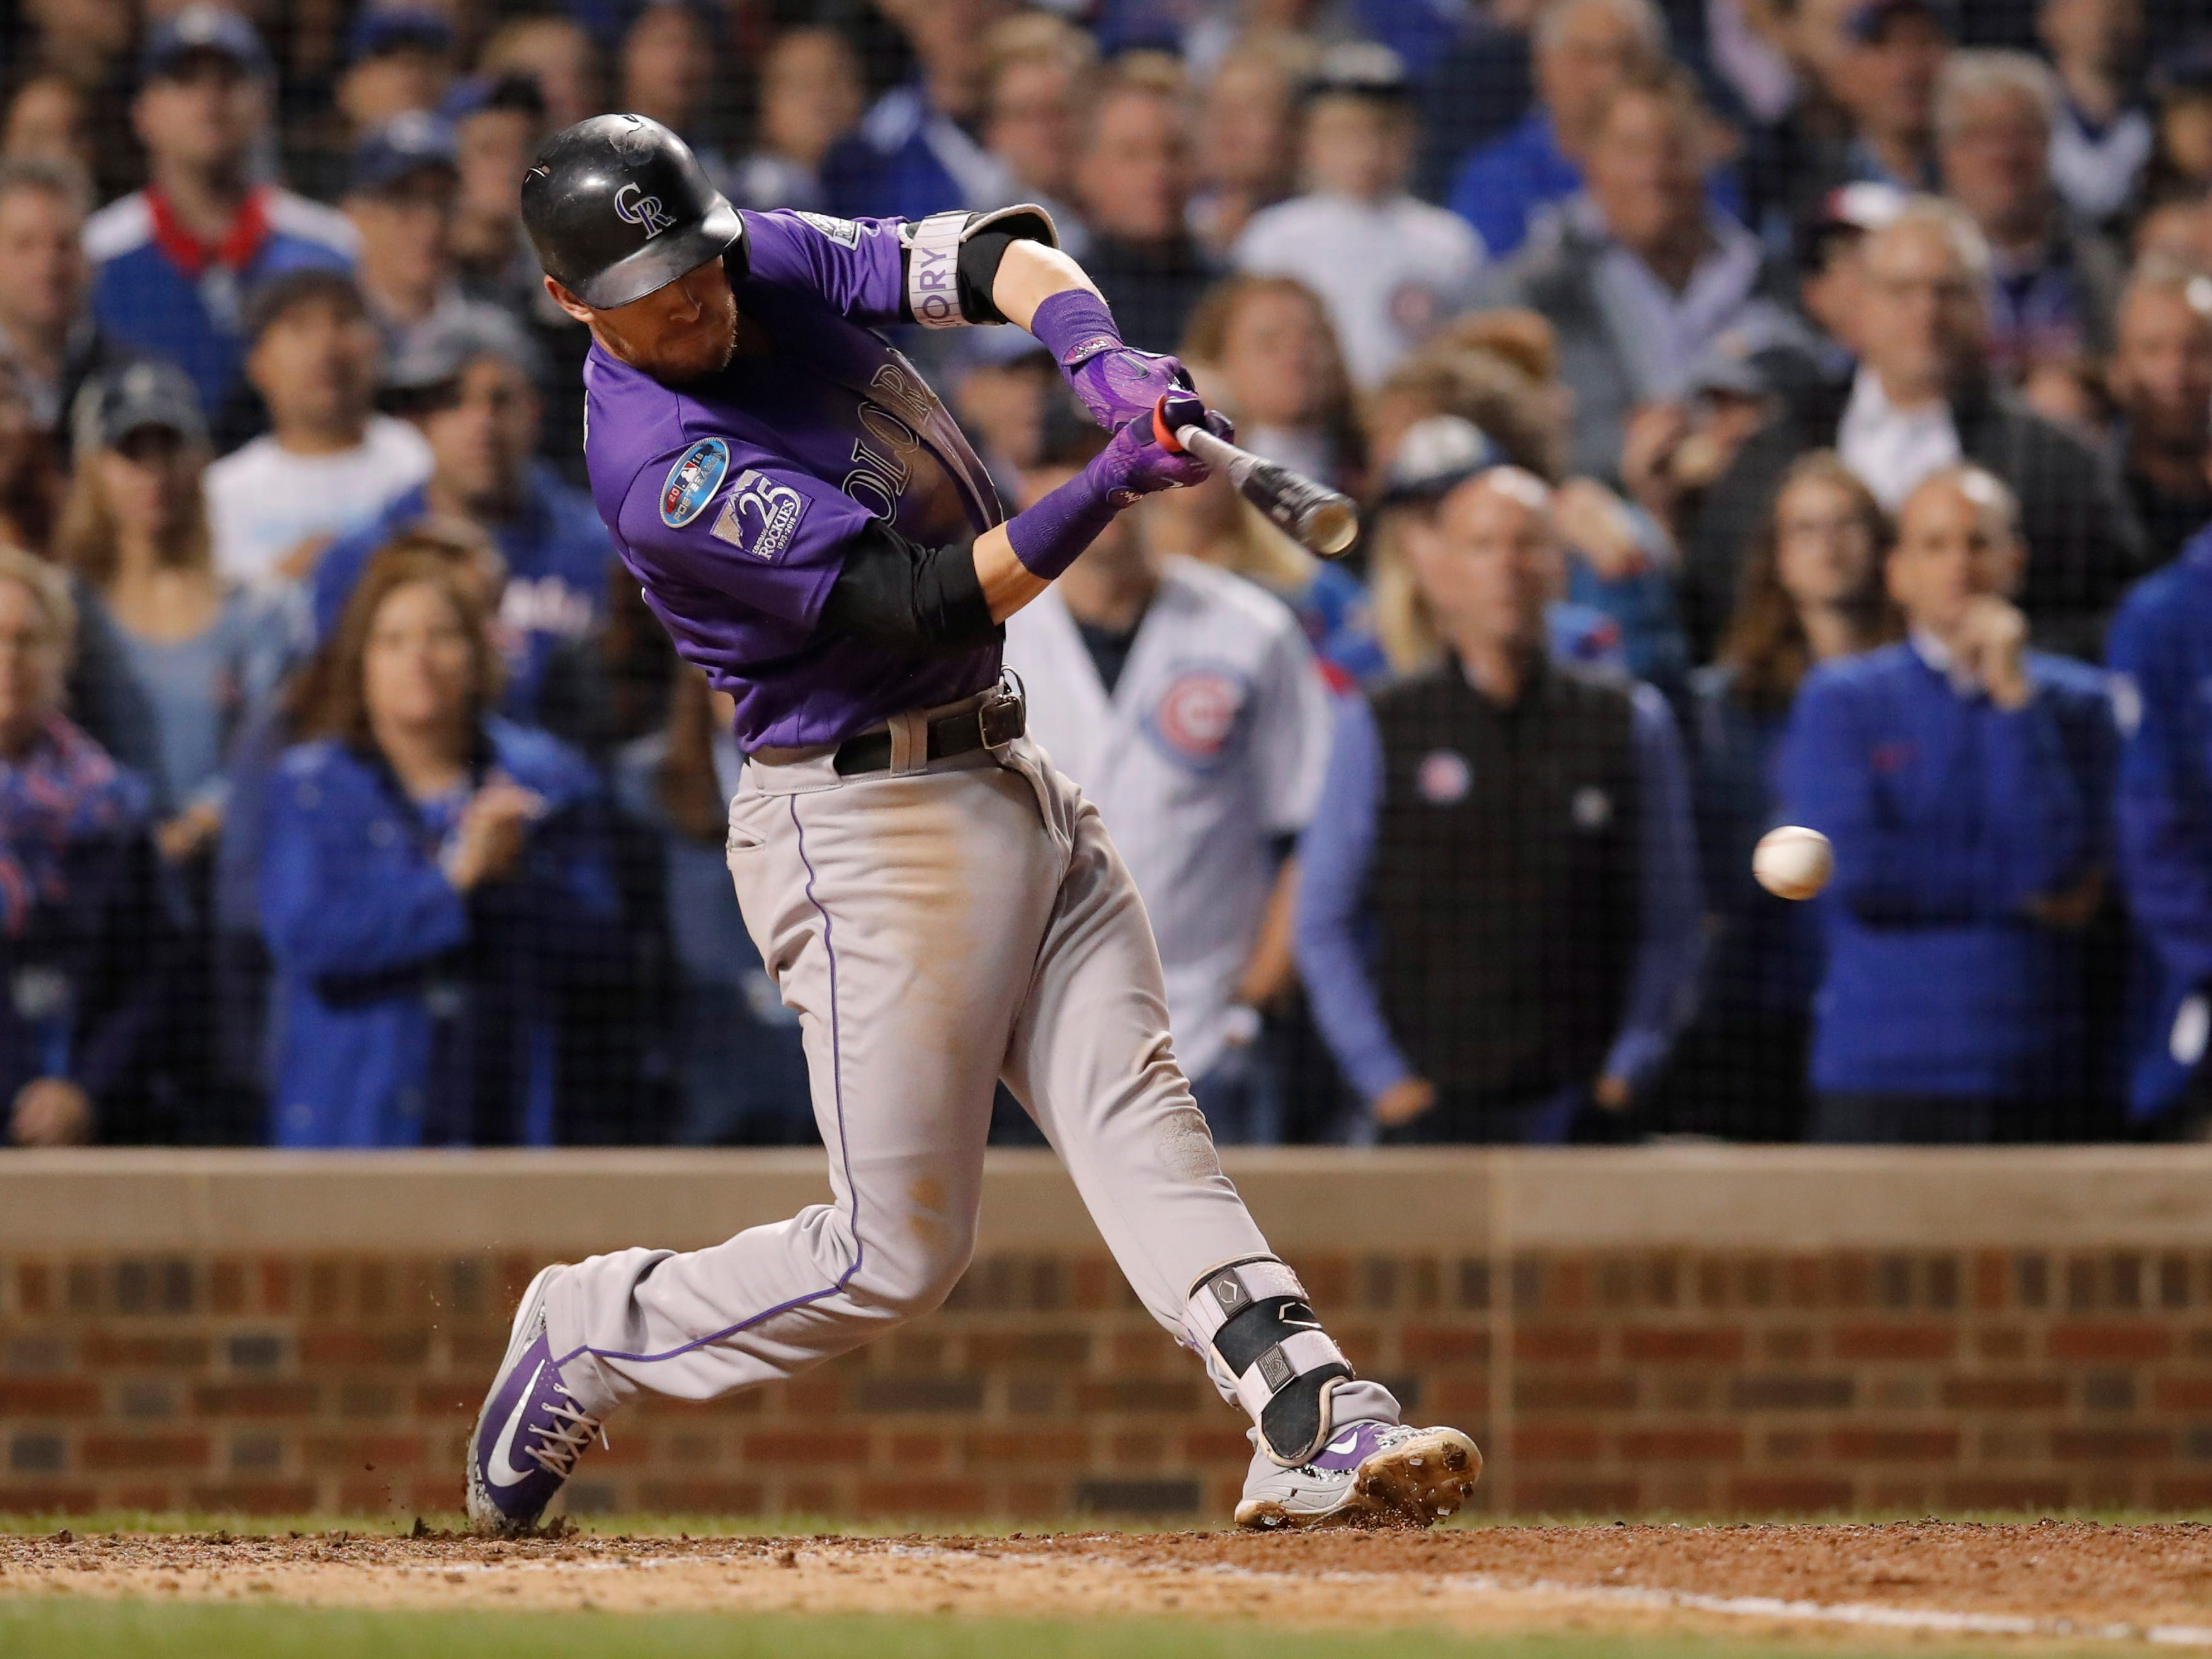 Oct 2, 2018; Chicago, IL, USA; Colorado Rockies shortstop Trevor Story hits a single in the 9th inning against the Chicago Cubs in the 2018 National League wild card playoff baseball game at Wrigley Field.